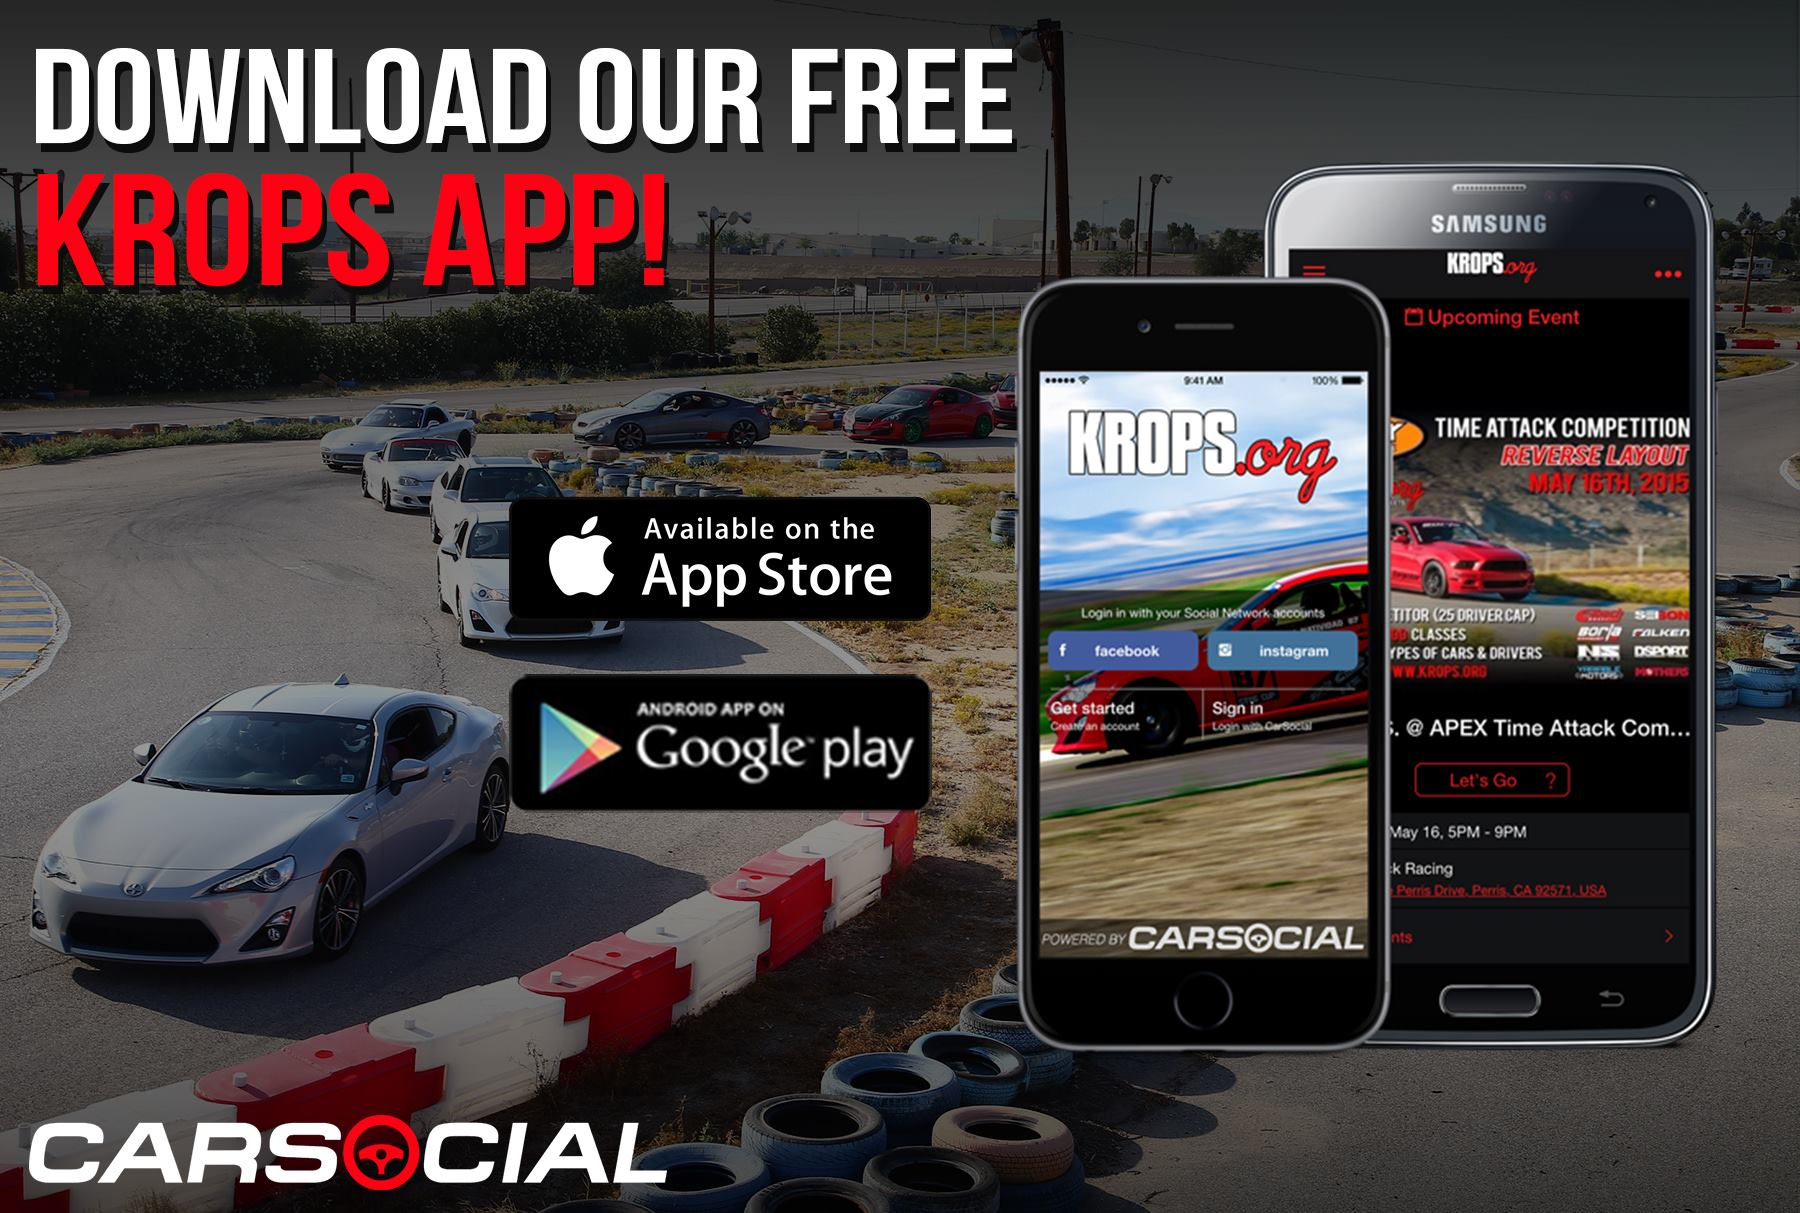 K.R.O.P.S. Launches Local Track Event iPhone and Android App